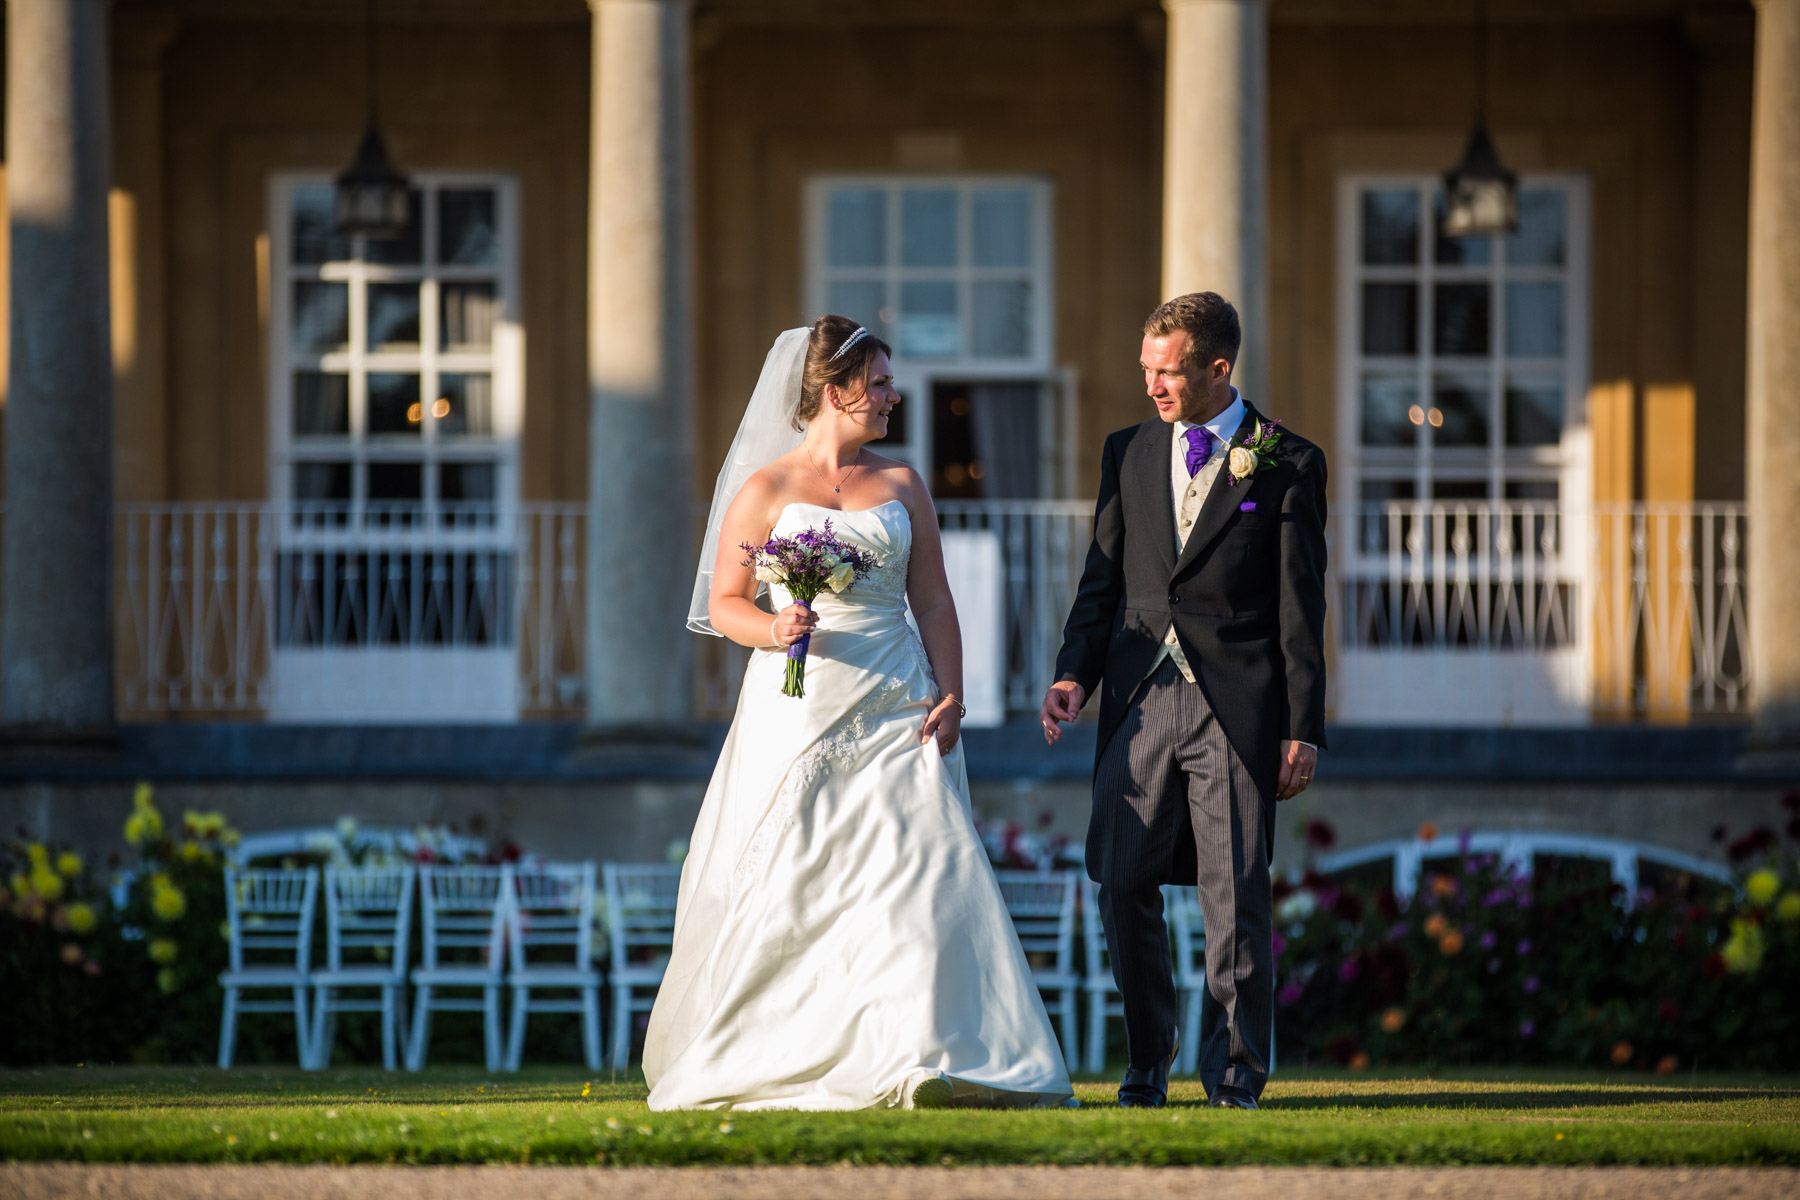 Buxted Park Hotel wedding photography Richard Murgatroyd